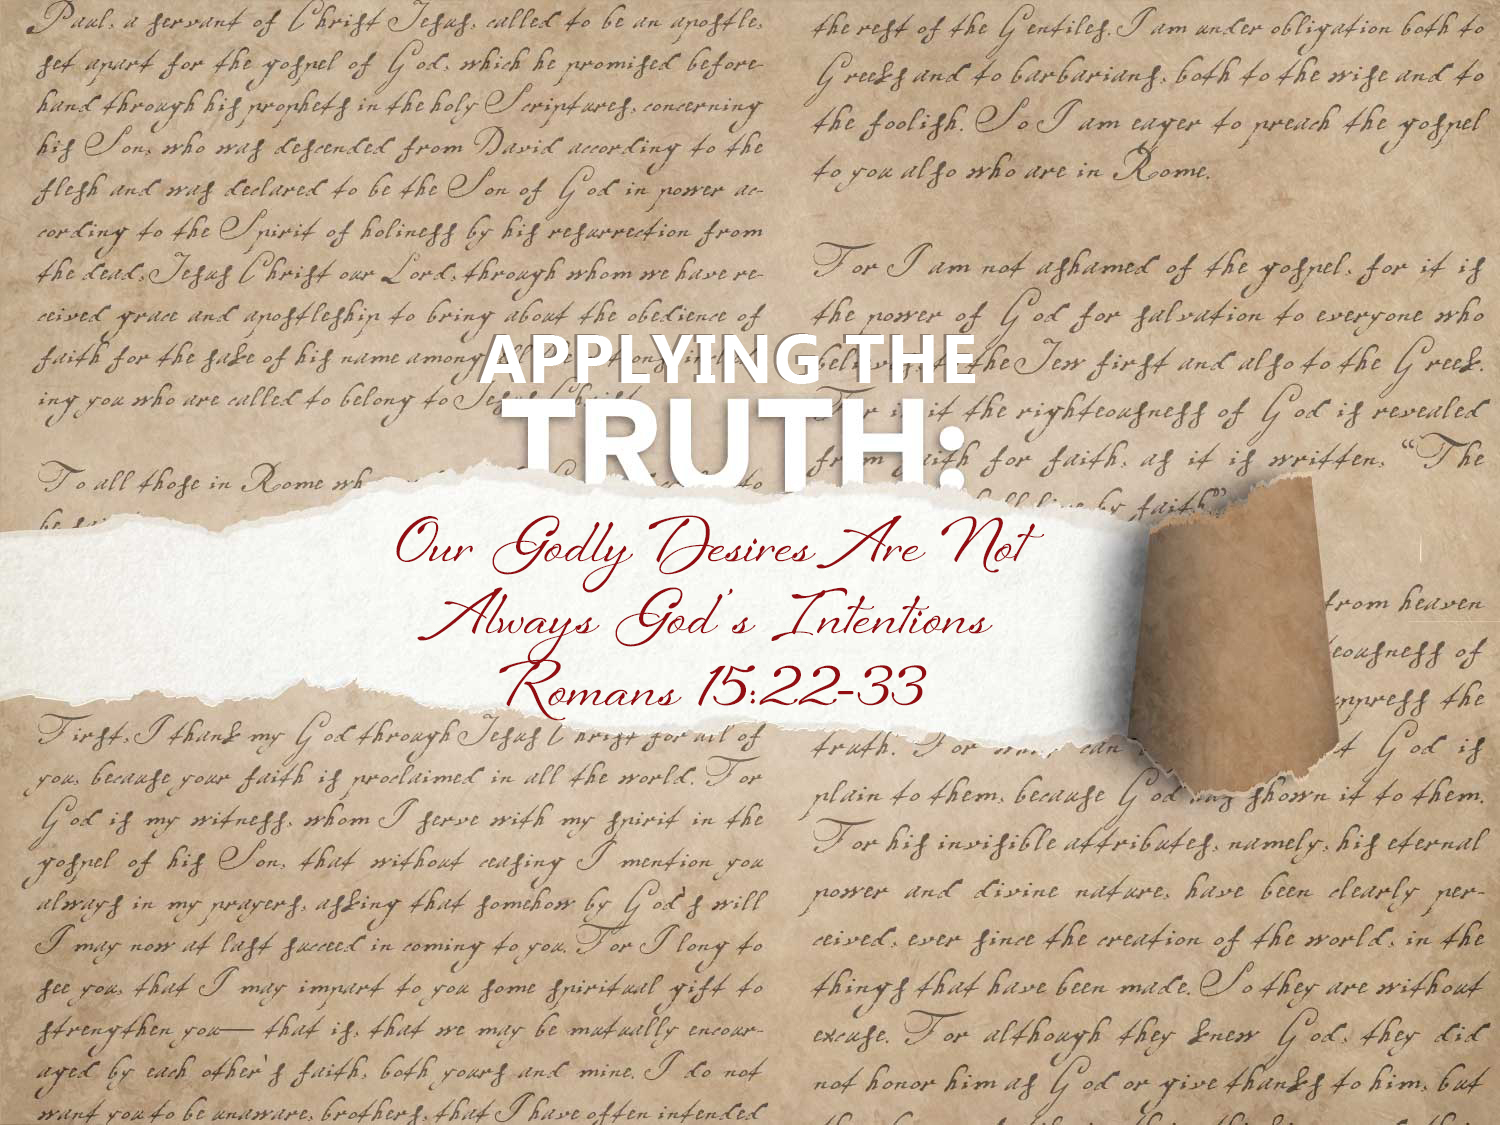 Romans 15 v 22-33 Our Godly Desires Are Not Always Gods Intentions